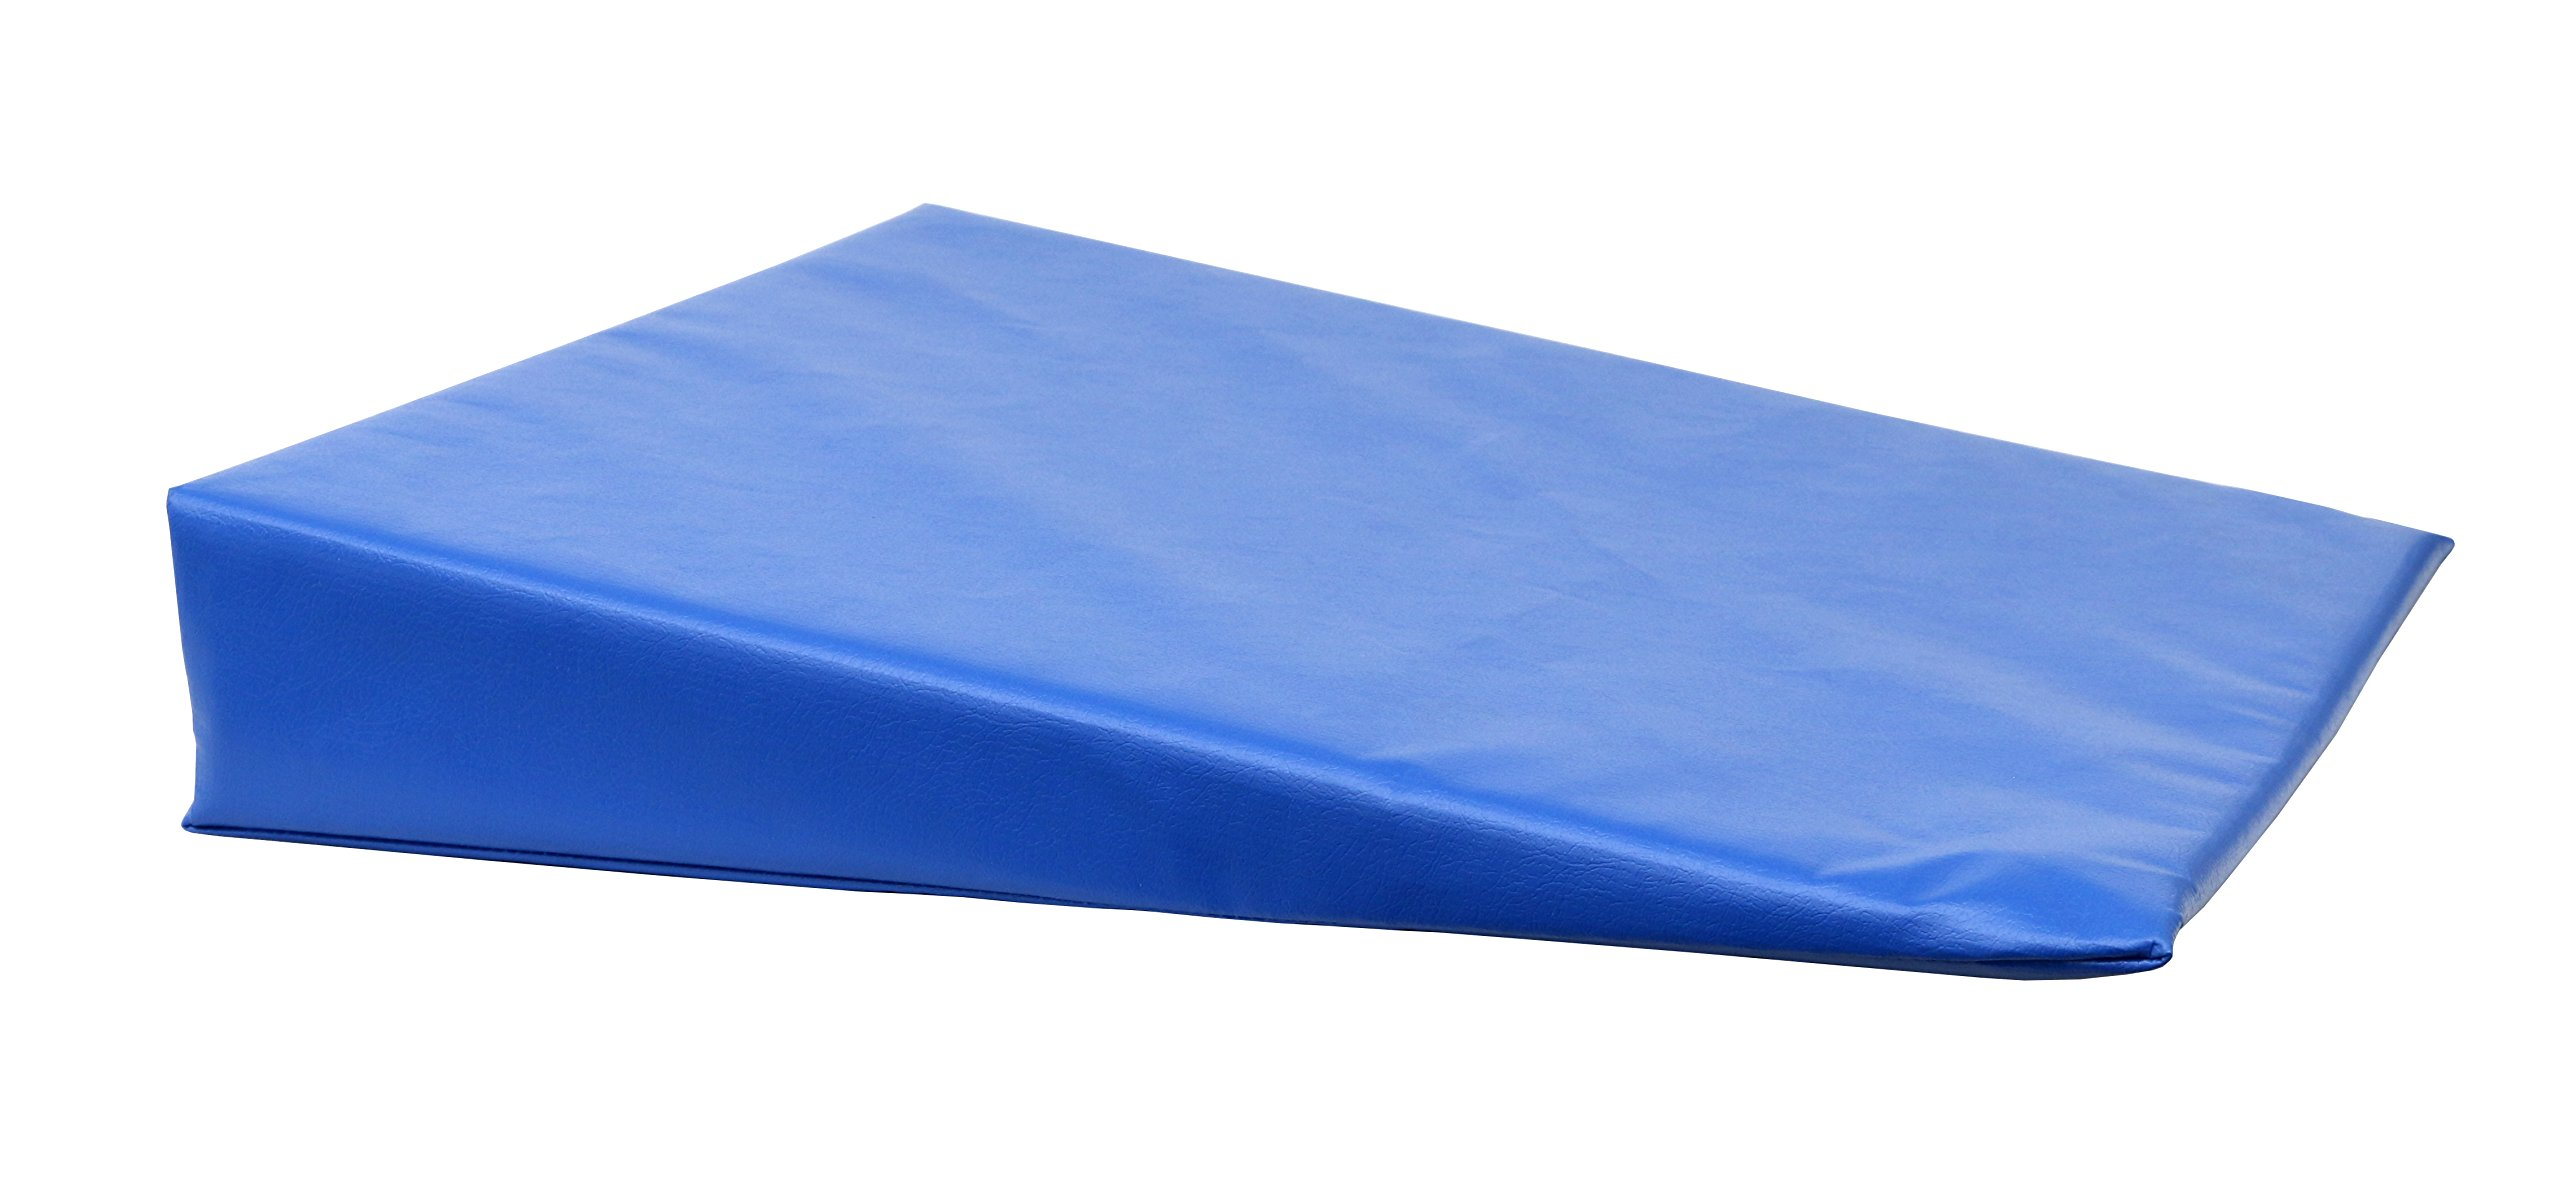 CanDo 31-2000S Positioning Wedge, Foam with Vinyl Cover, Soft, 20'' x 22'' x 4'', Royal Blue by Cando